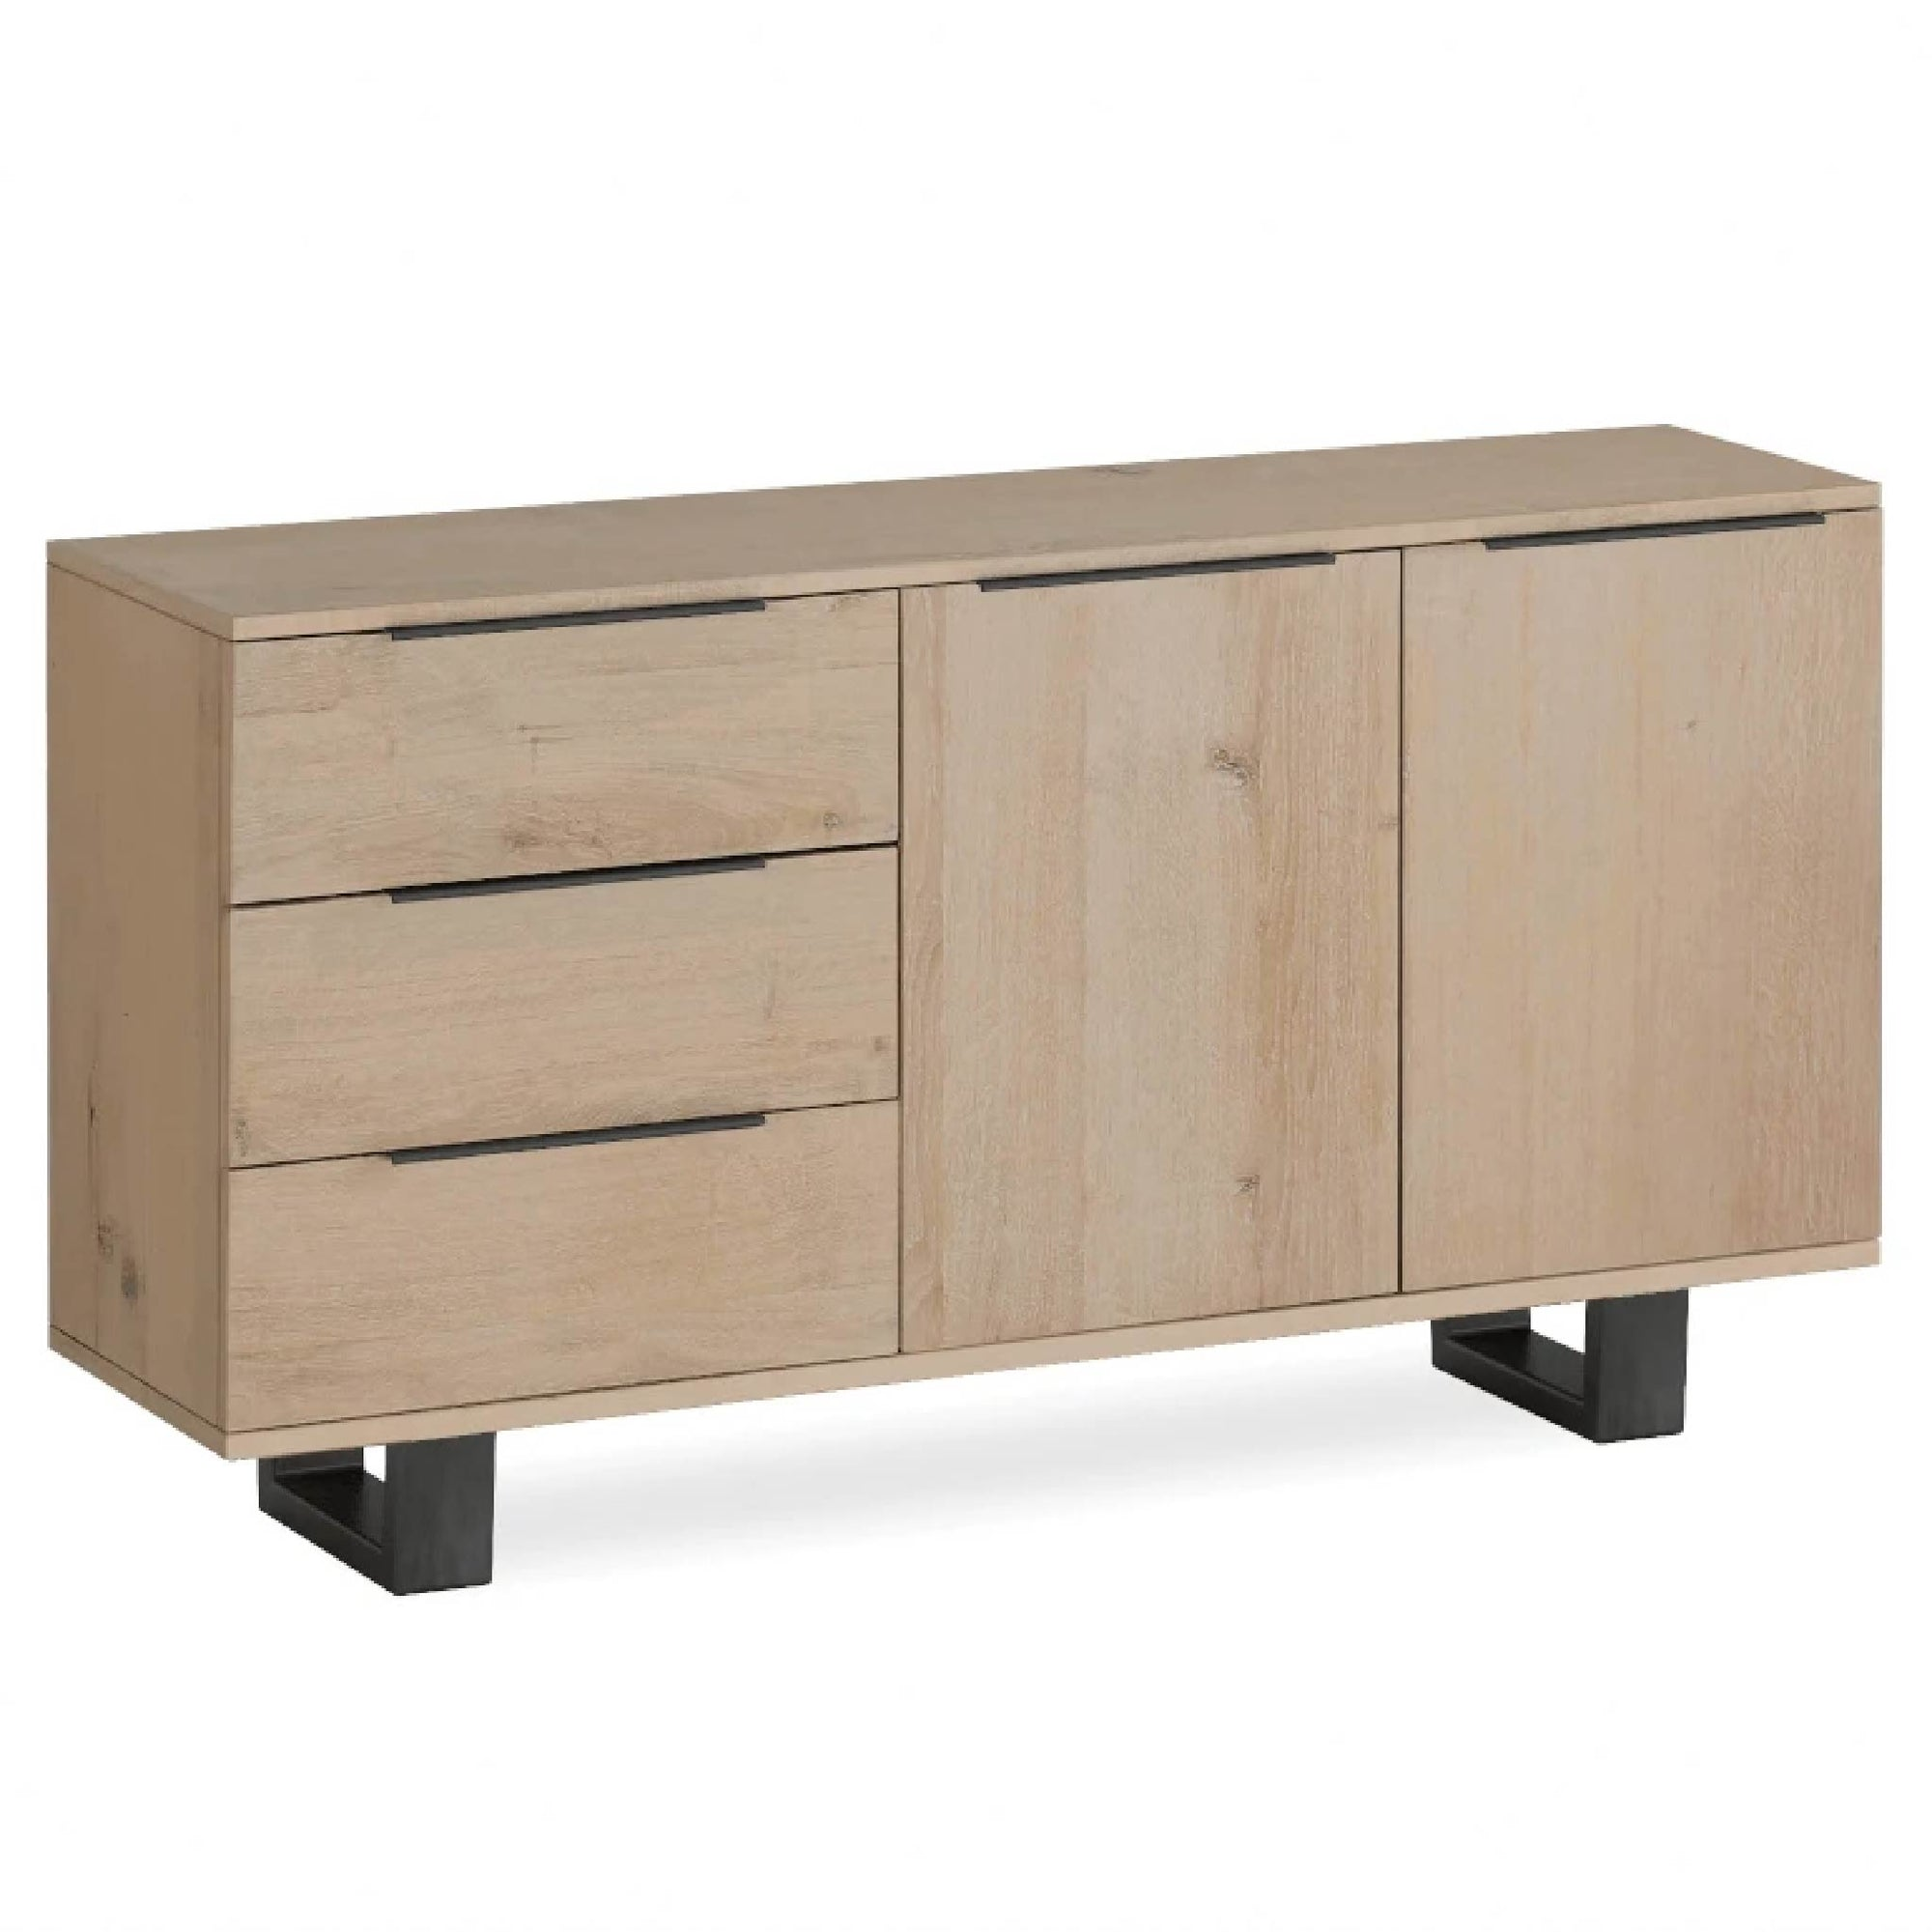 Oak Mill Small Sideboard - Metal Base - White Oil by Roseland Furniture